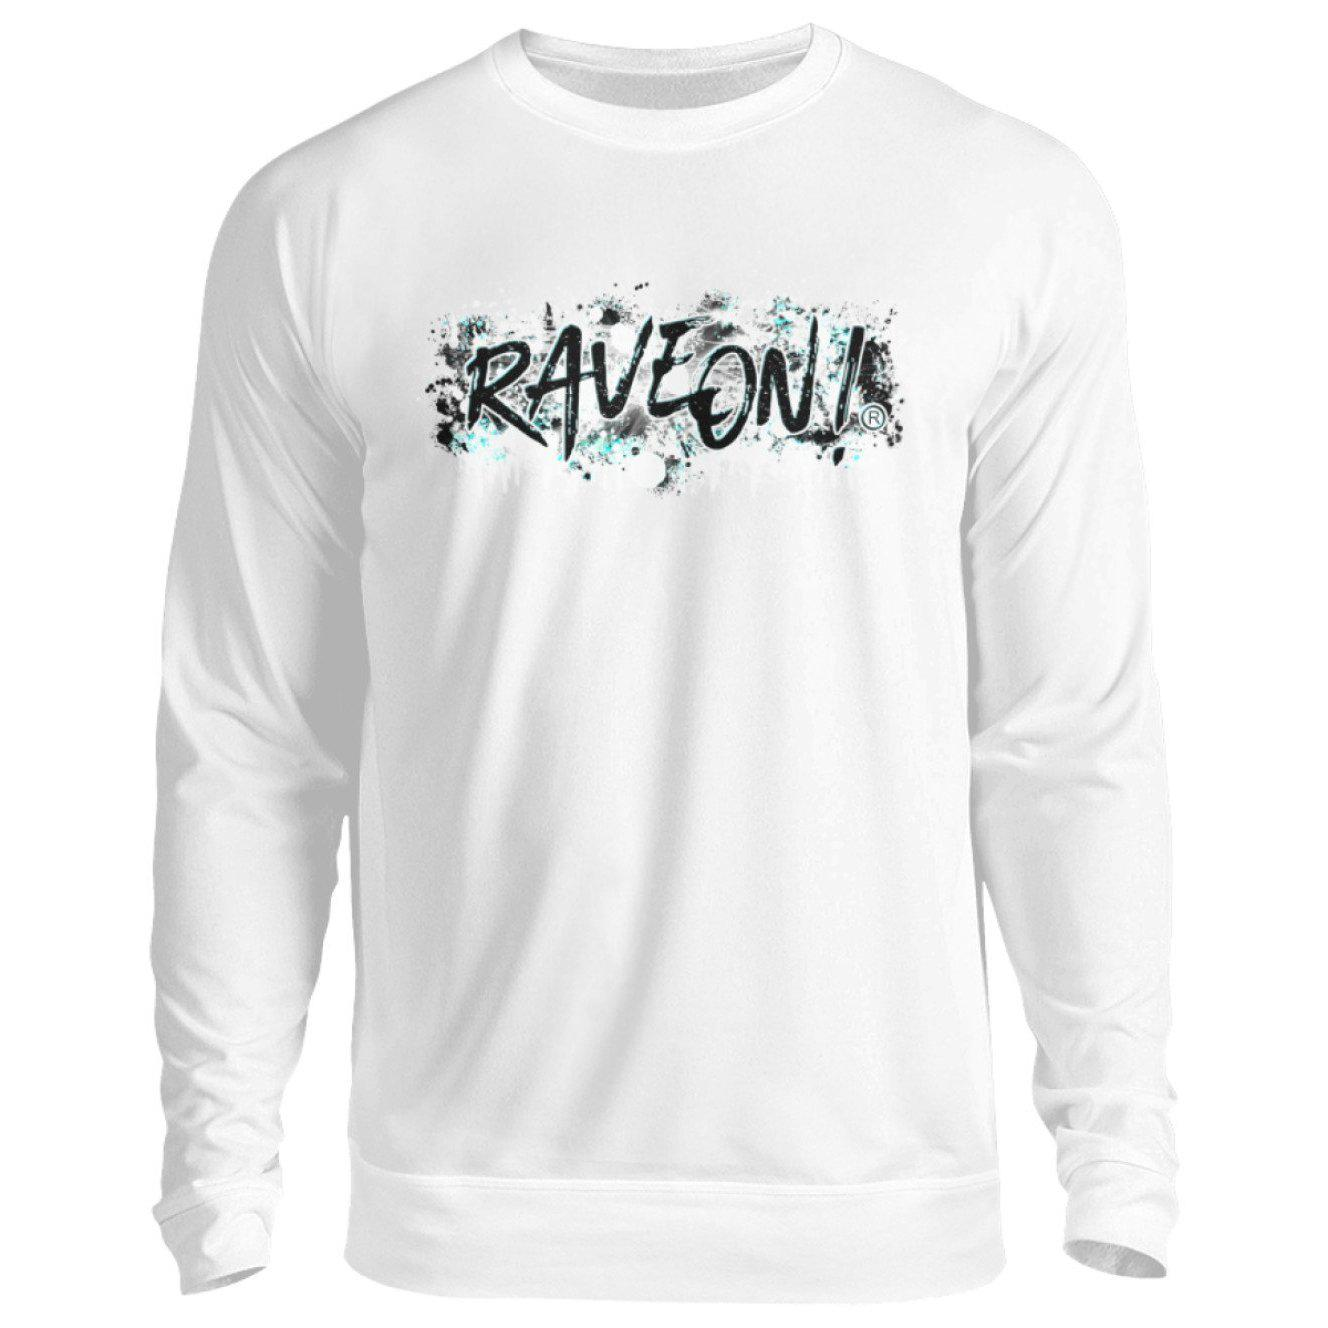 Rave On! Paint on white -Rave On!® - Unisex Pullover Unisex Sweatshirt Arctic White / S - Rave On!® the club & techno scene shop for cool young fashion streetwear style & fashion outfits + sexy festival 420 stuff